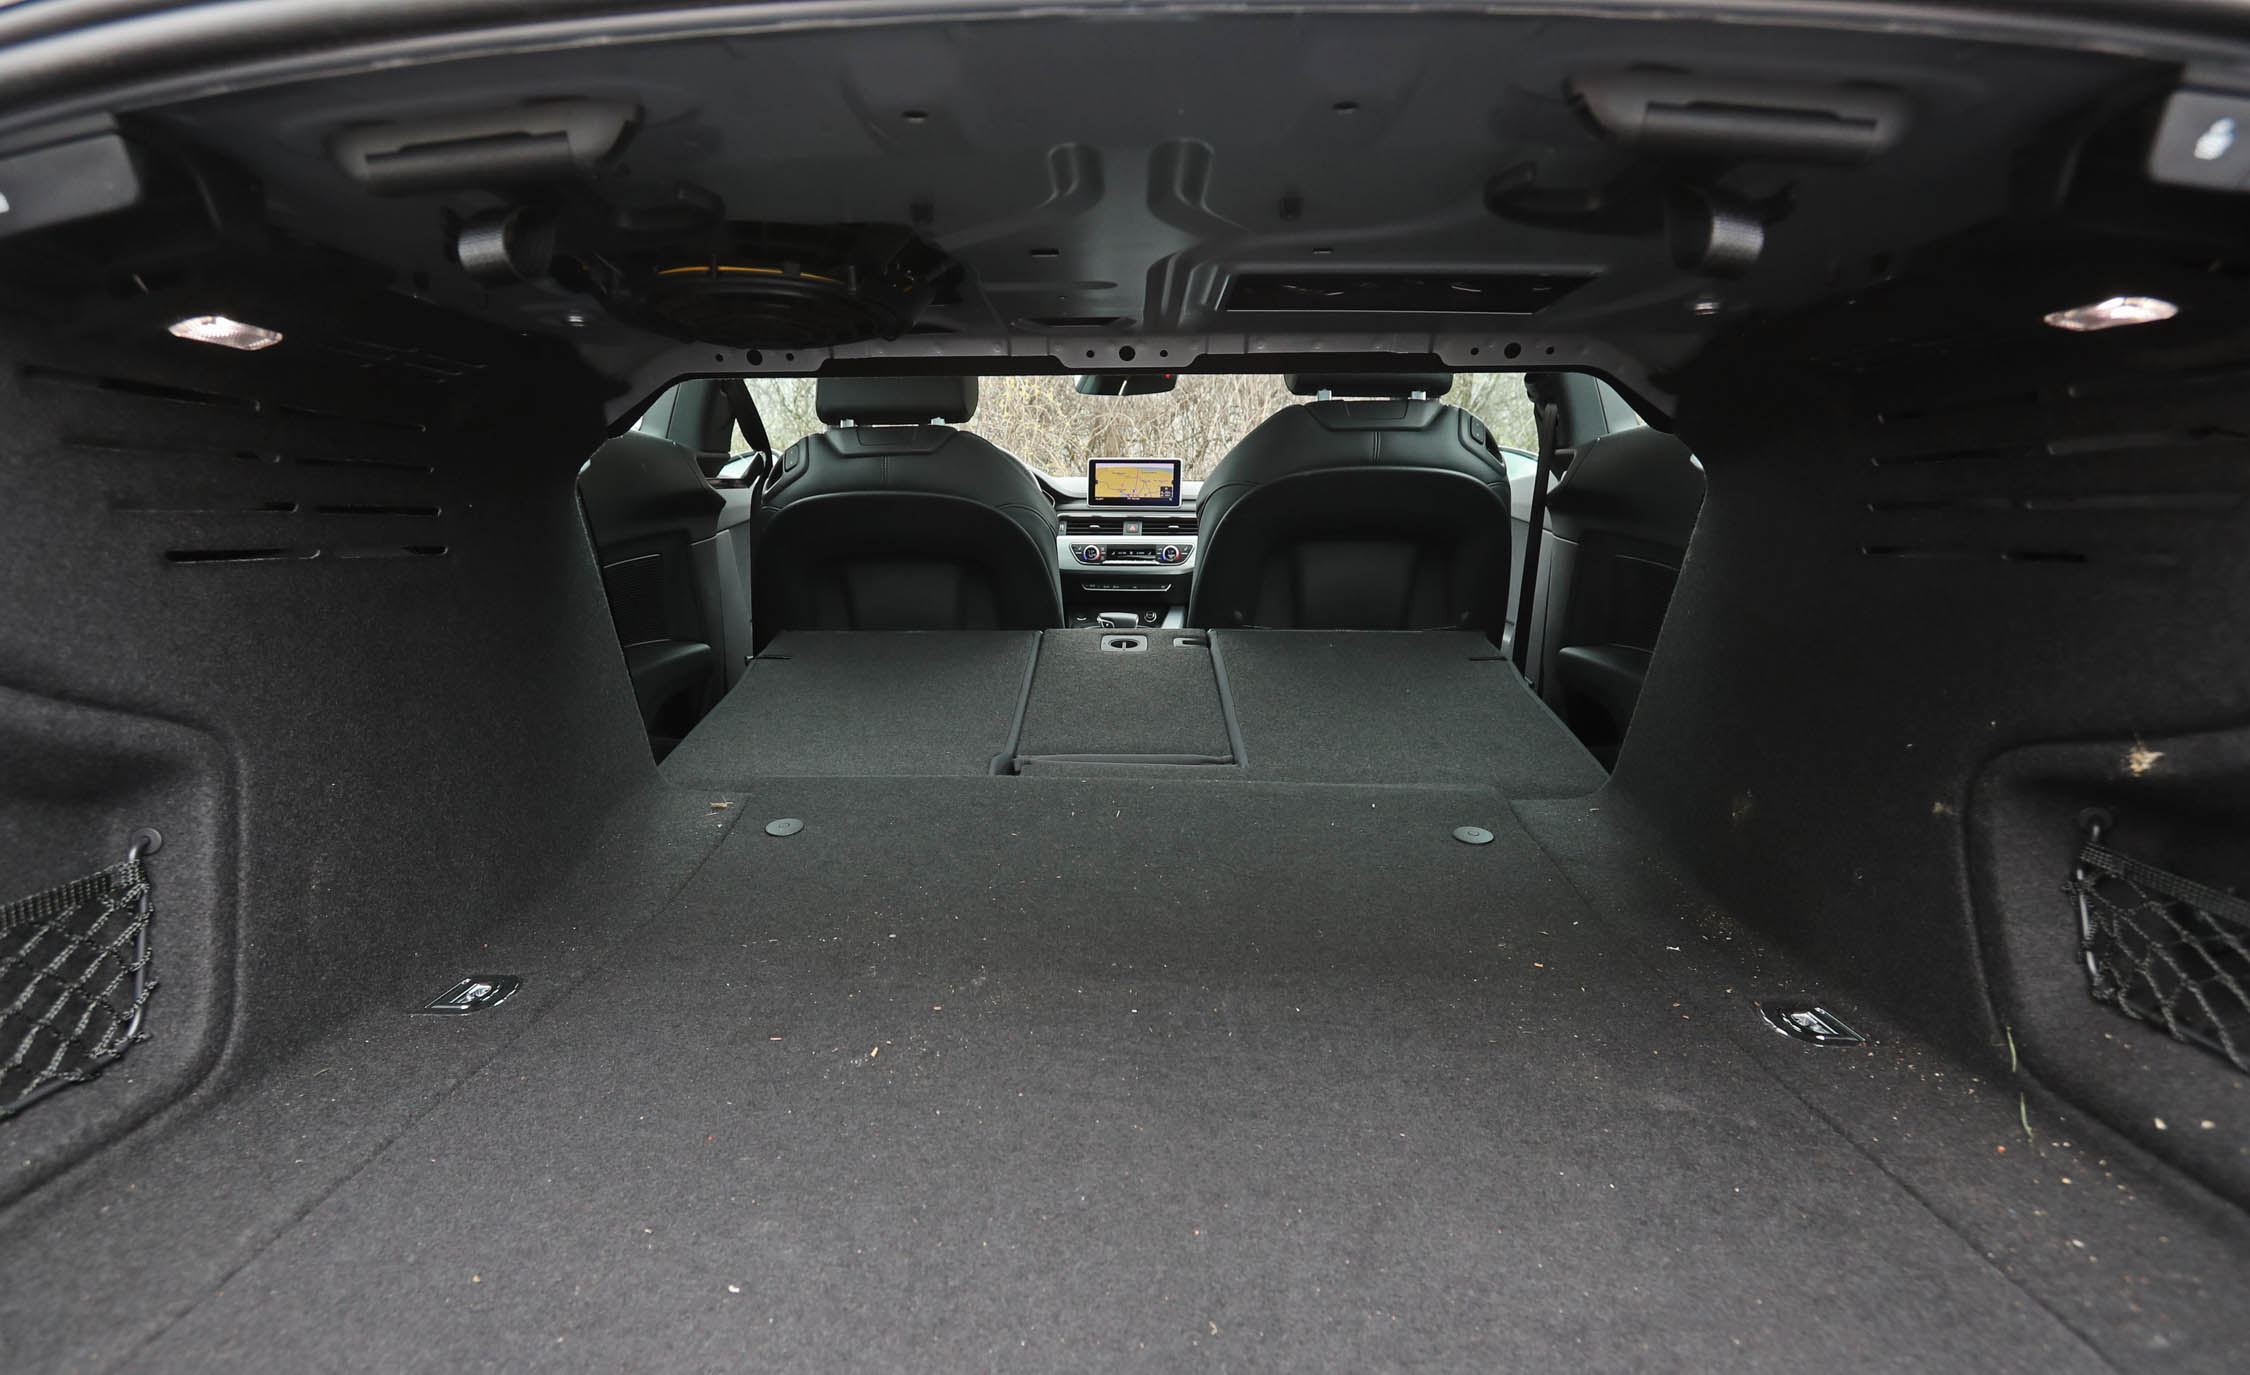 2018 Audi A5 Coupe Interior View Cargo Trunk Seats Folded (Photo 25 of 50)